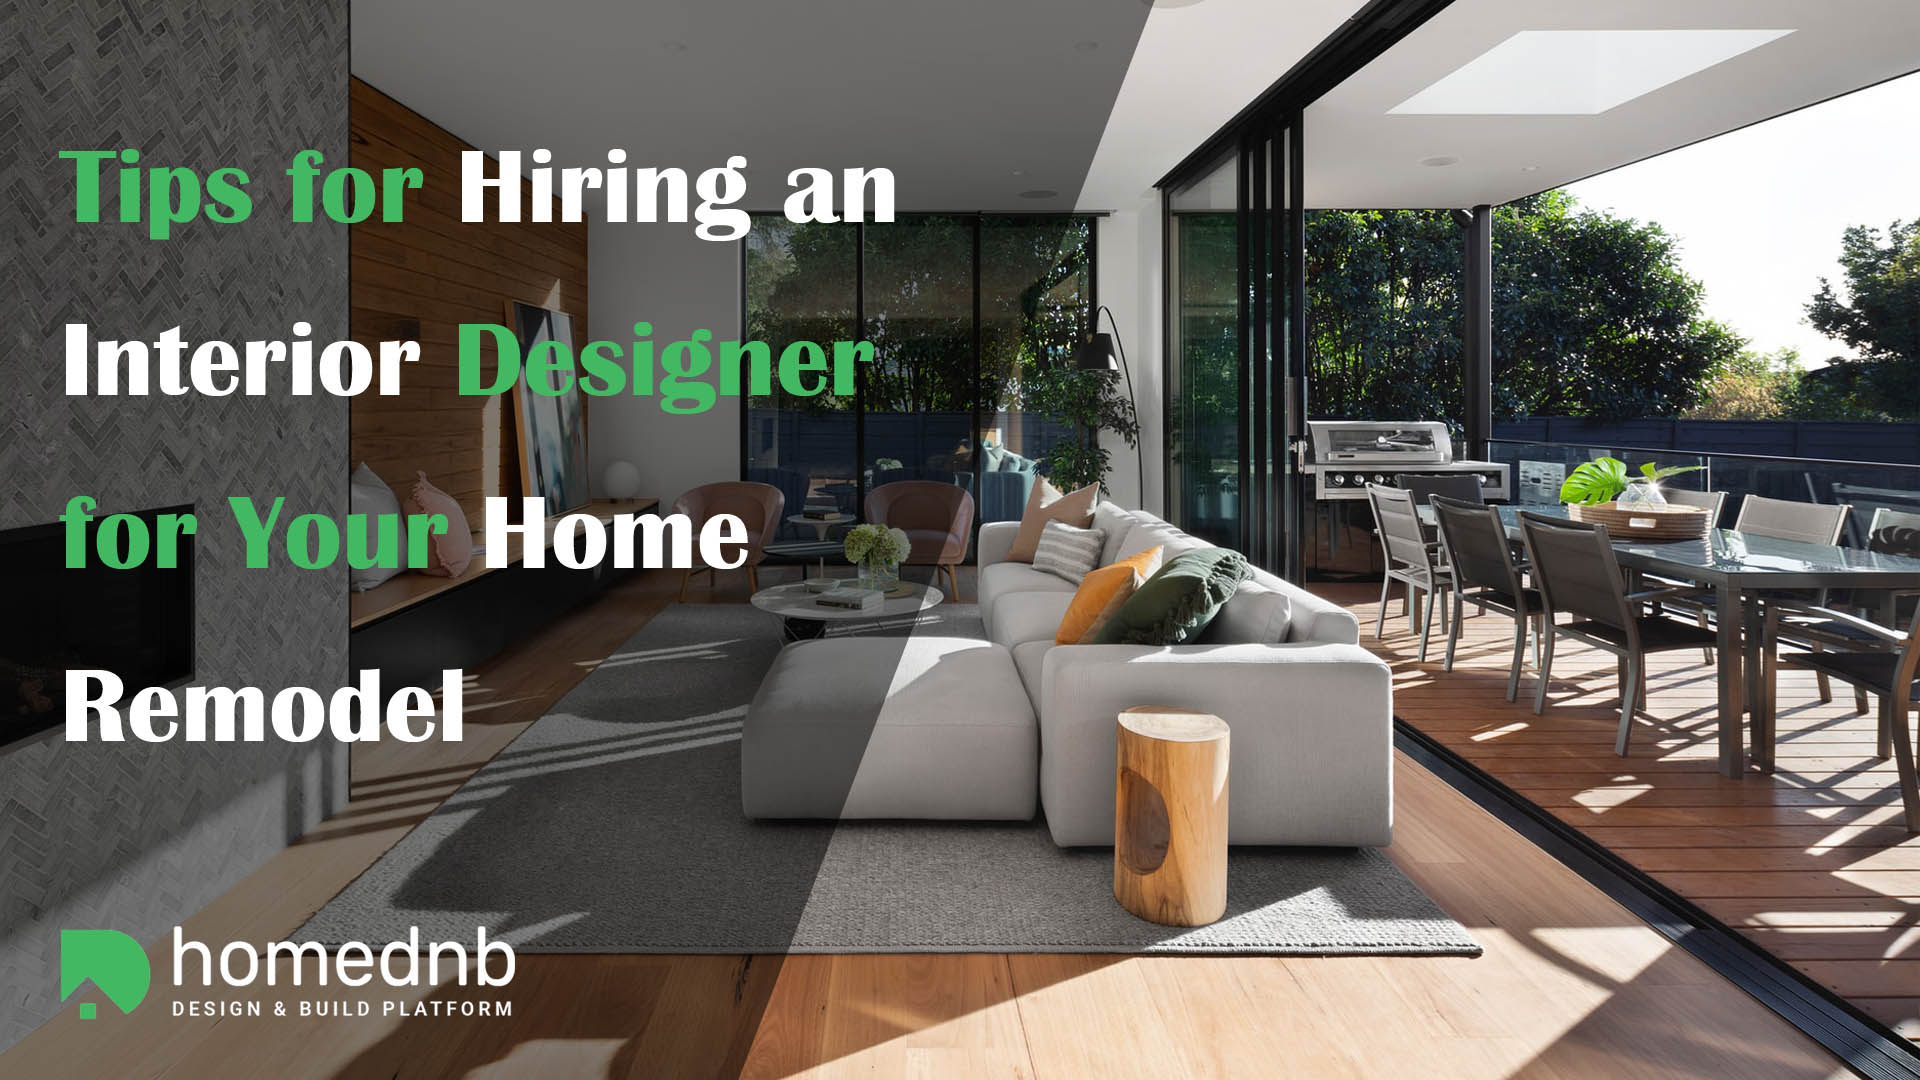 Tips for Hiring an Interior Designer for Your Home Remodel